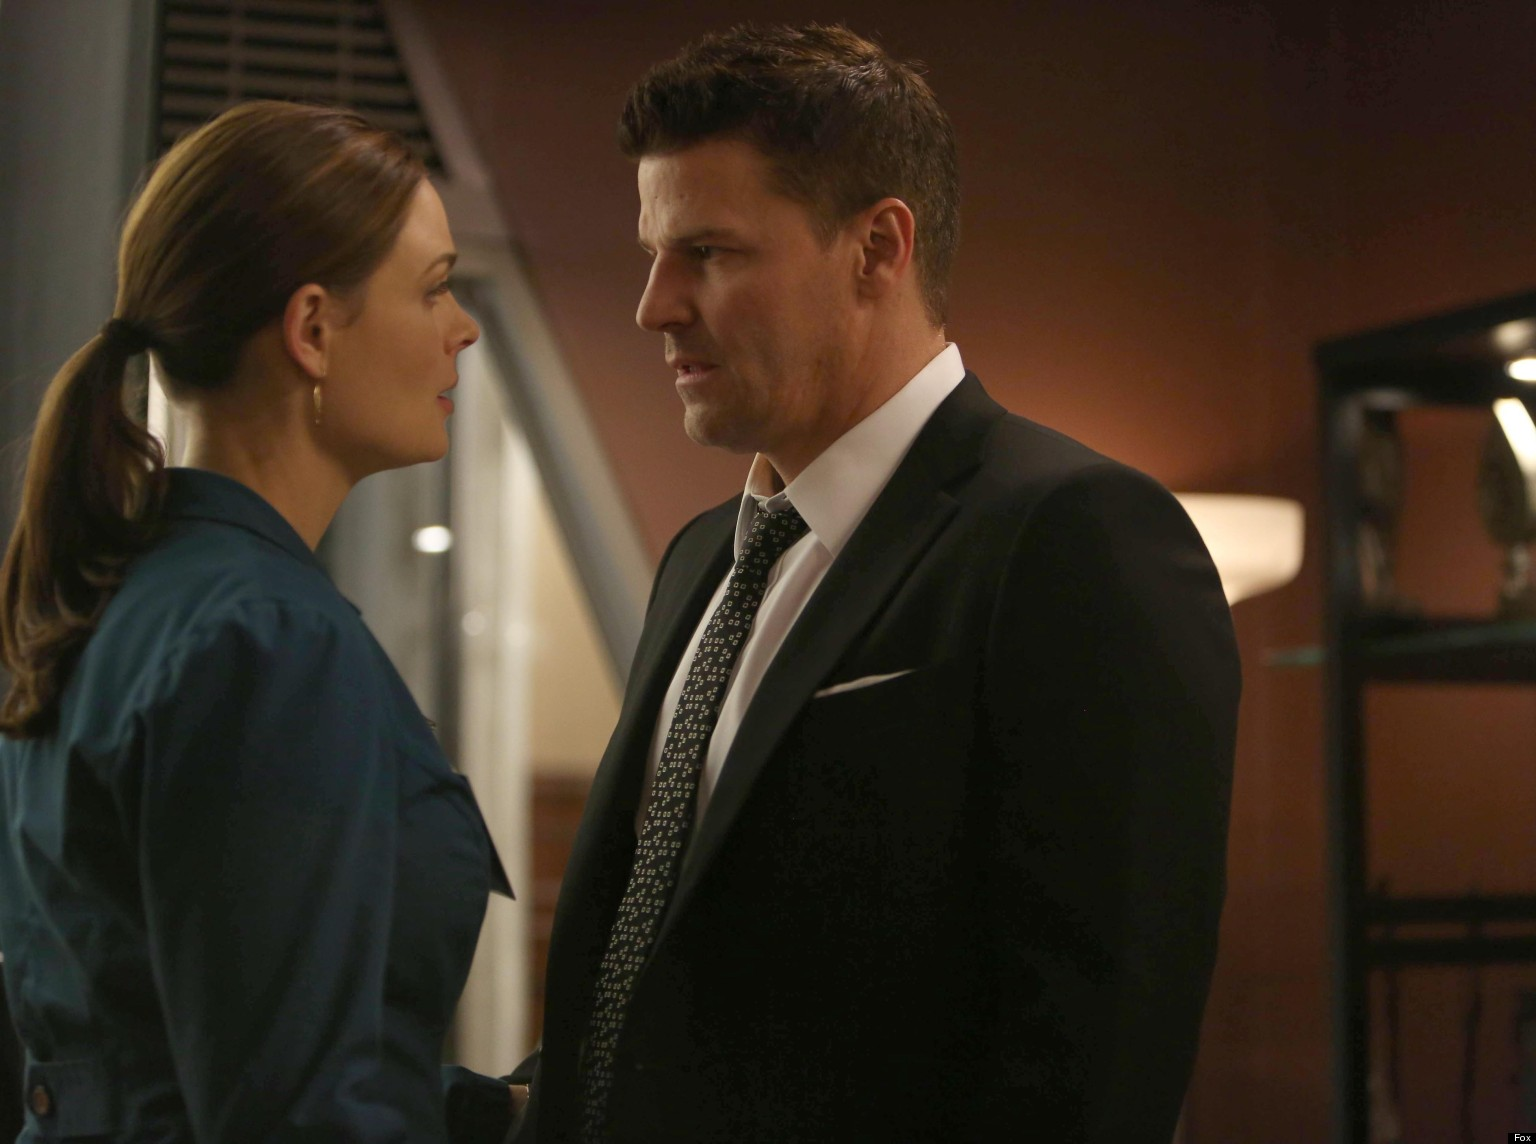 bones finale brennan proposes to booth but things don